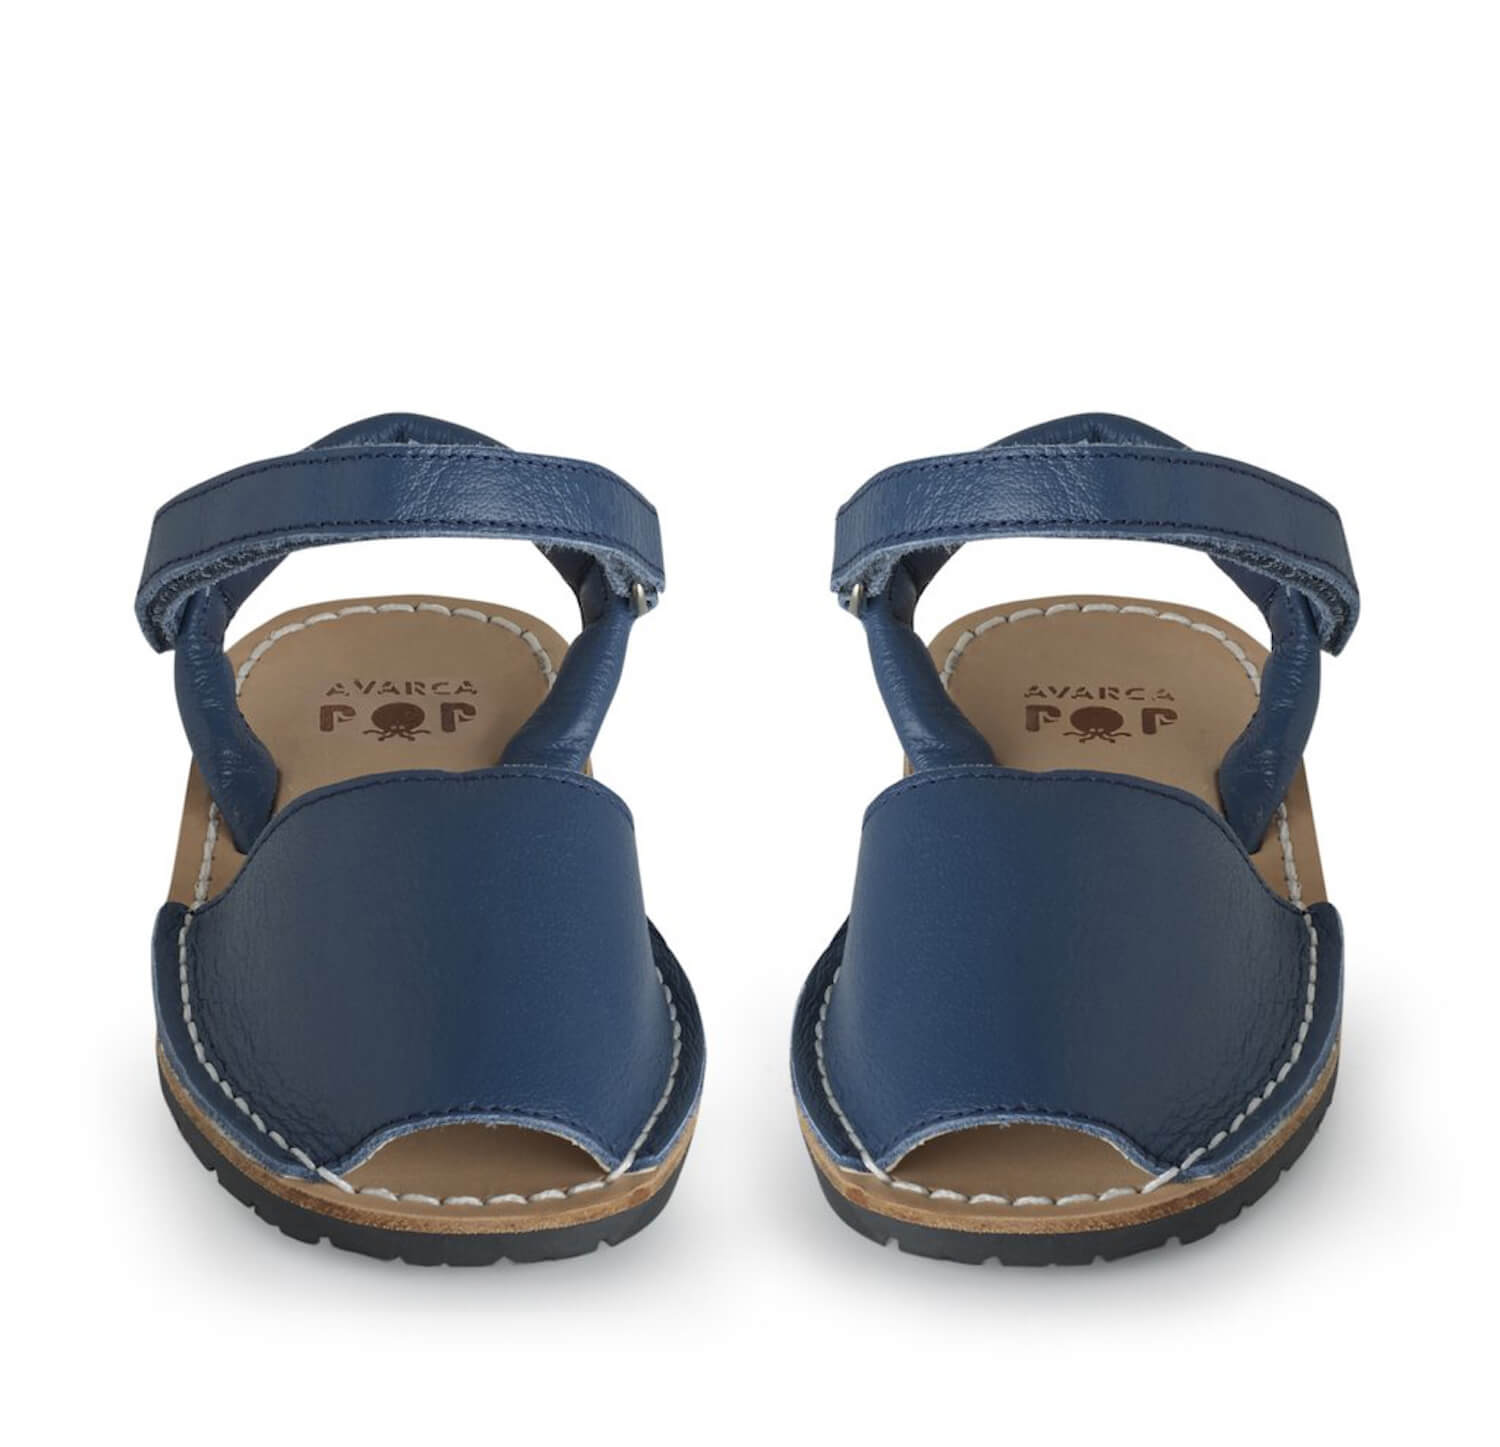 Popetto Sandals | Kids Gift Guide | Est Living